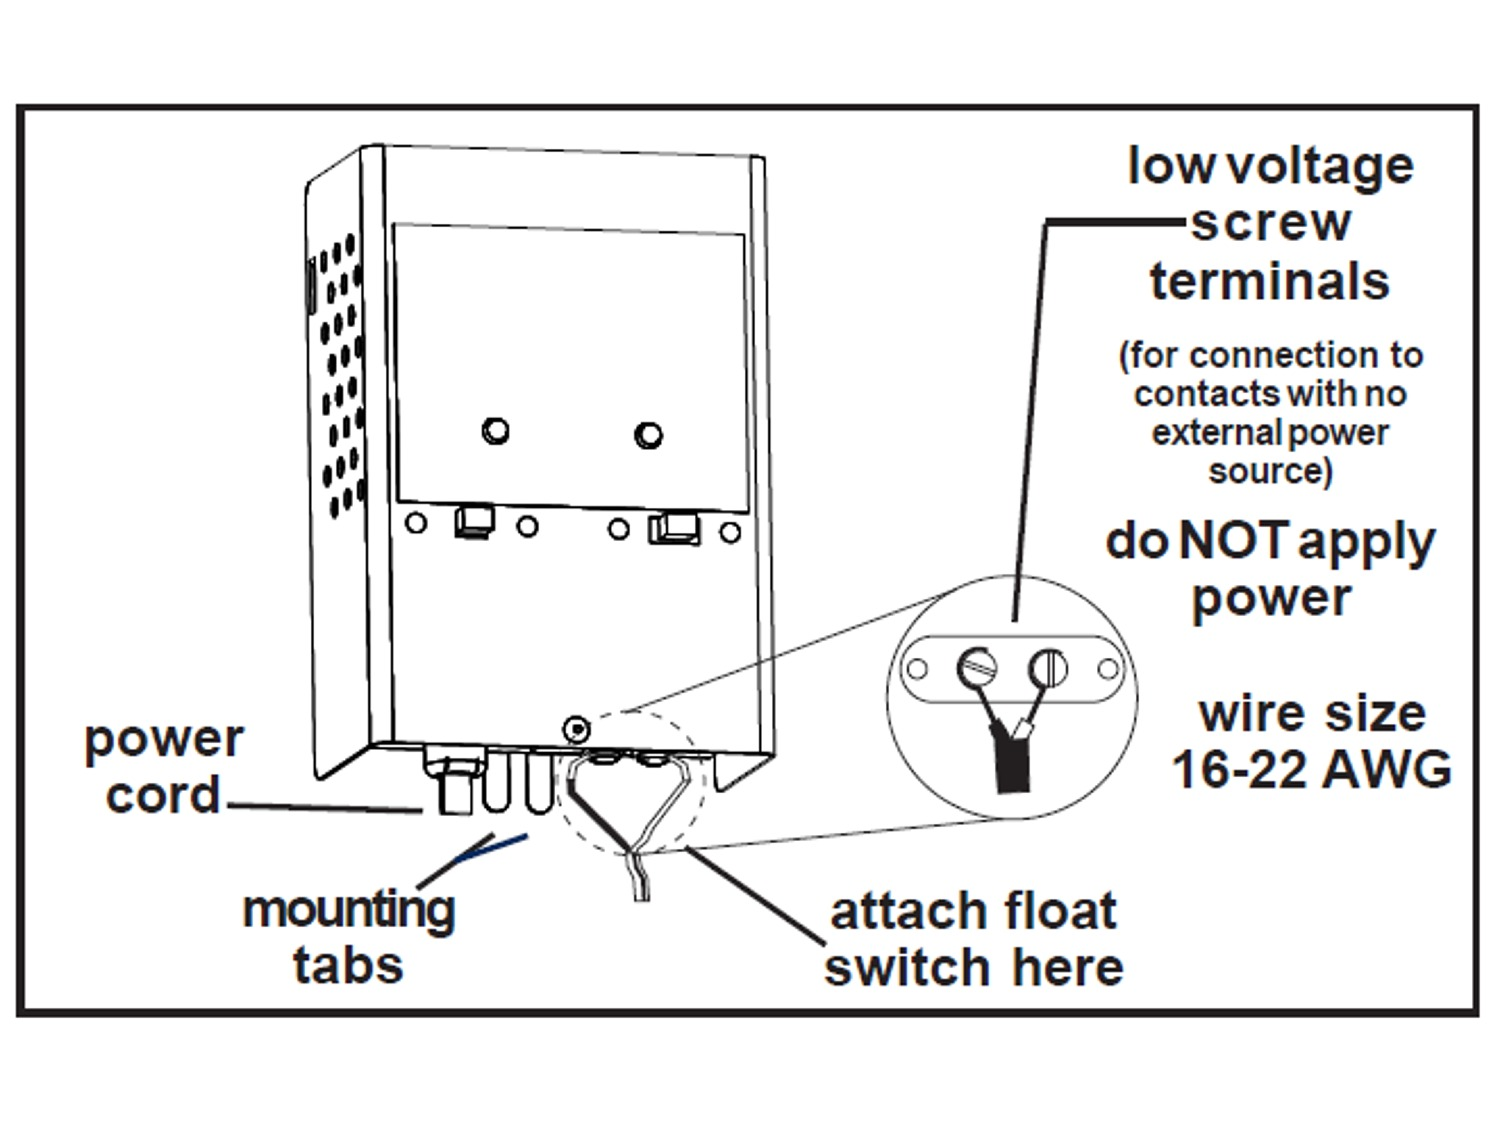 hight resolution of septic system wiring wiring diagram yerseptic system wiring blog wiring diagram aerobic septic system wiring septic